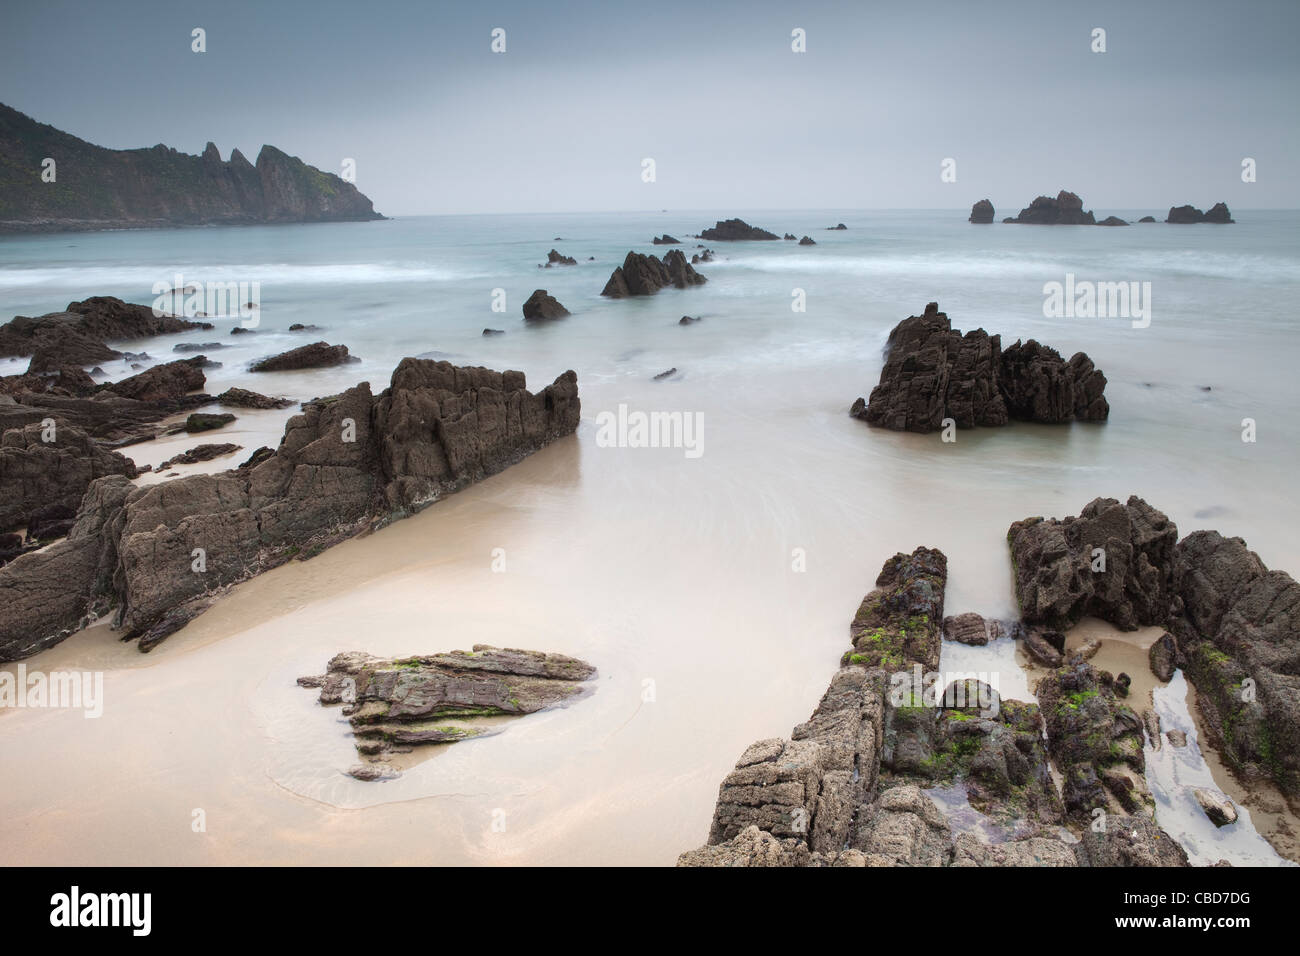 Waves washing up on rocky beach - Stock Image